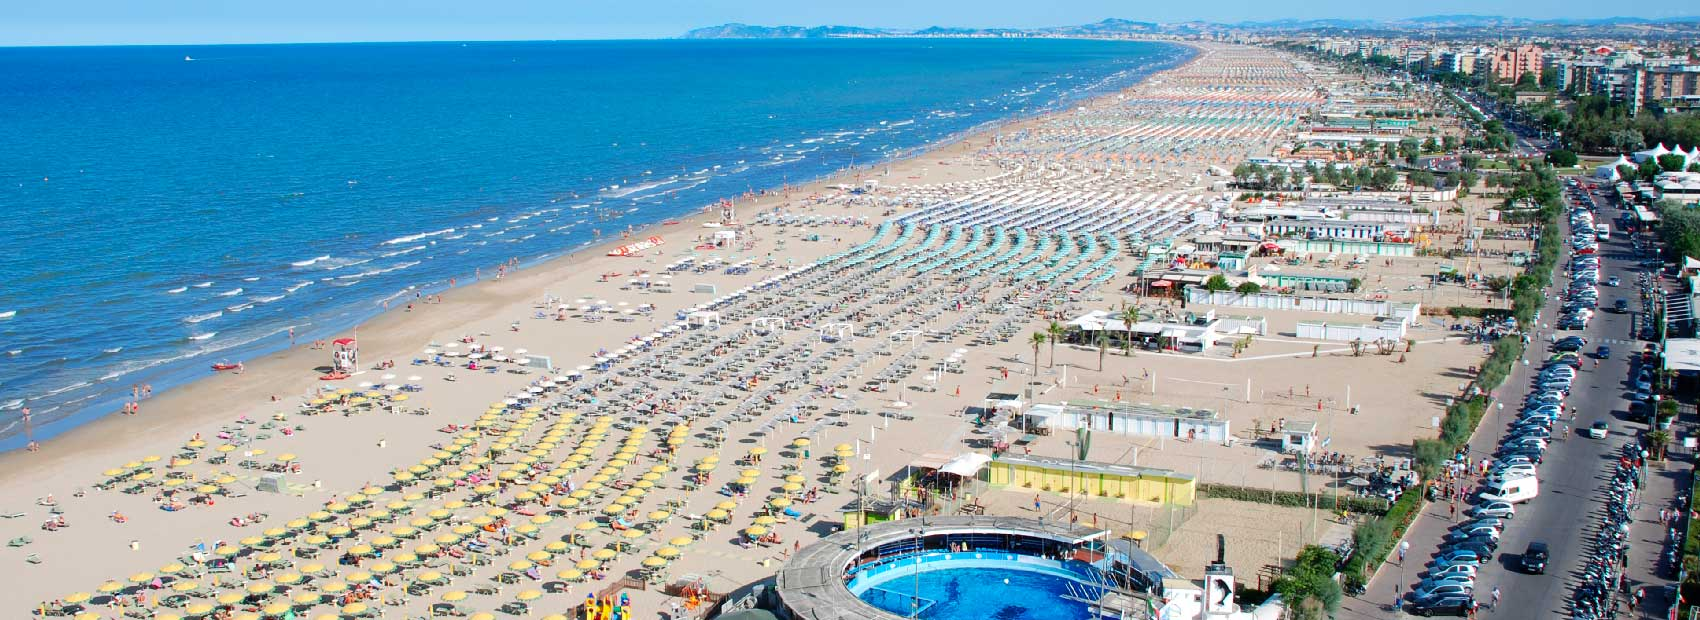 The Rimini beach is the most sought after destination for summer holidays - and it's nobody's wonder!